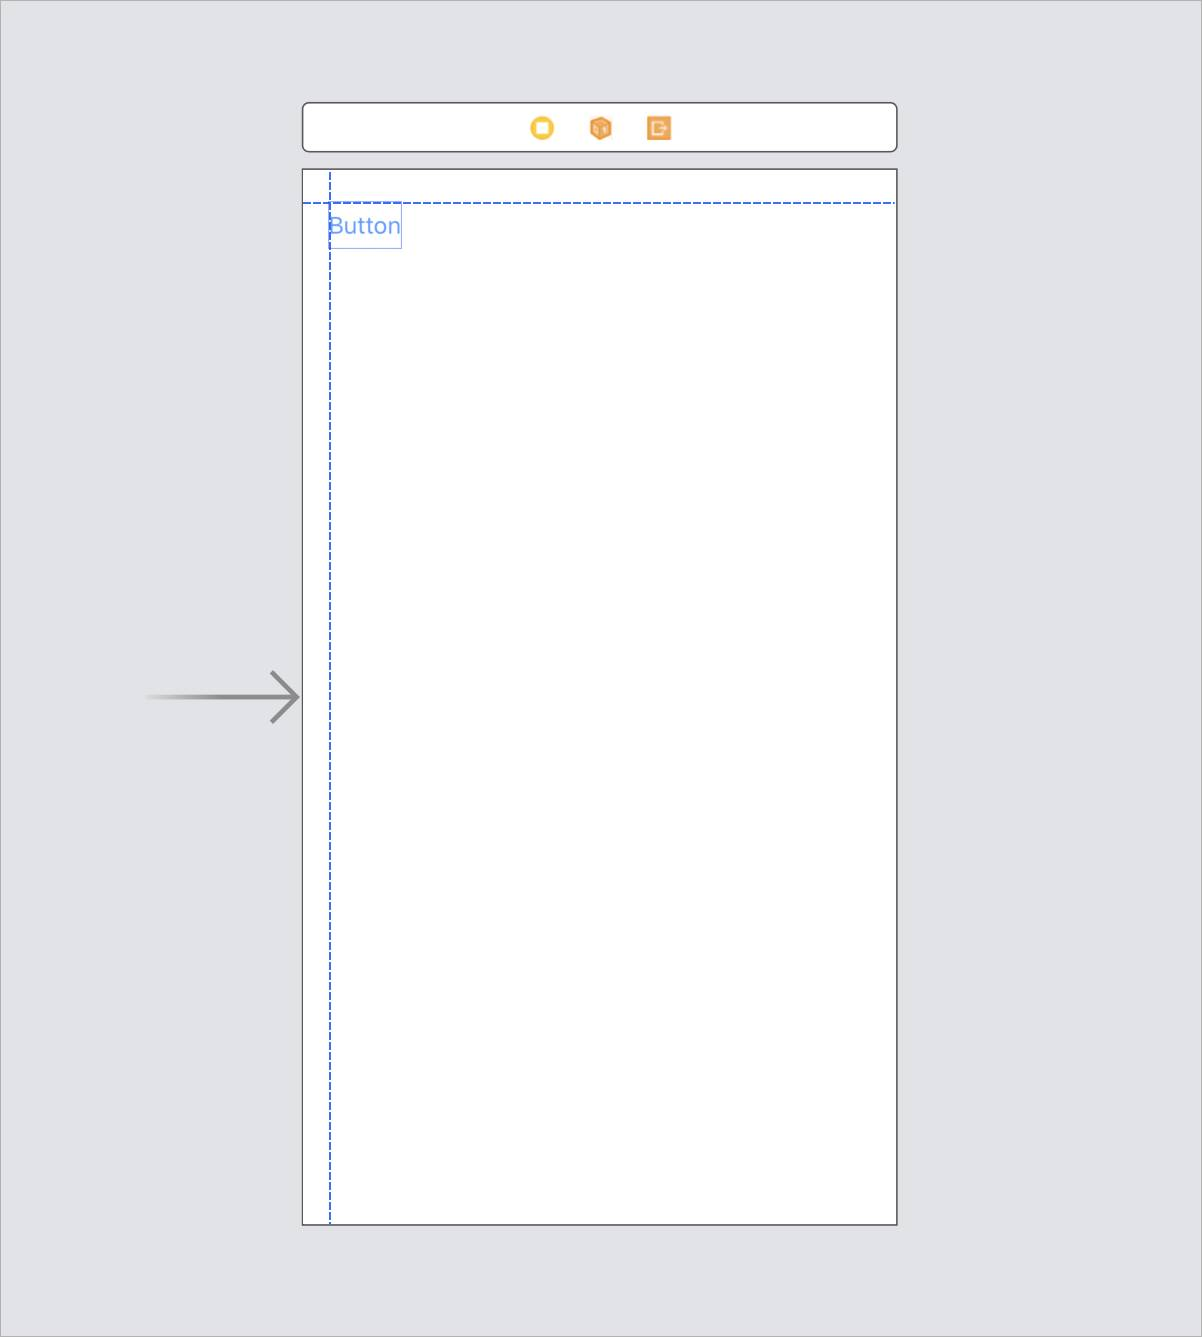 The Button alignment with margin guides, aligned on the top left of the canvas.